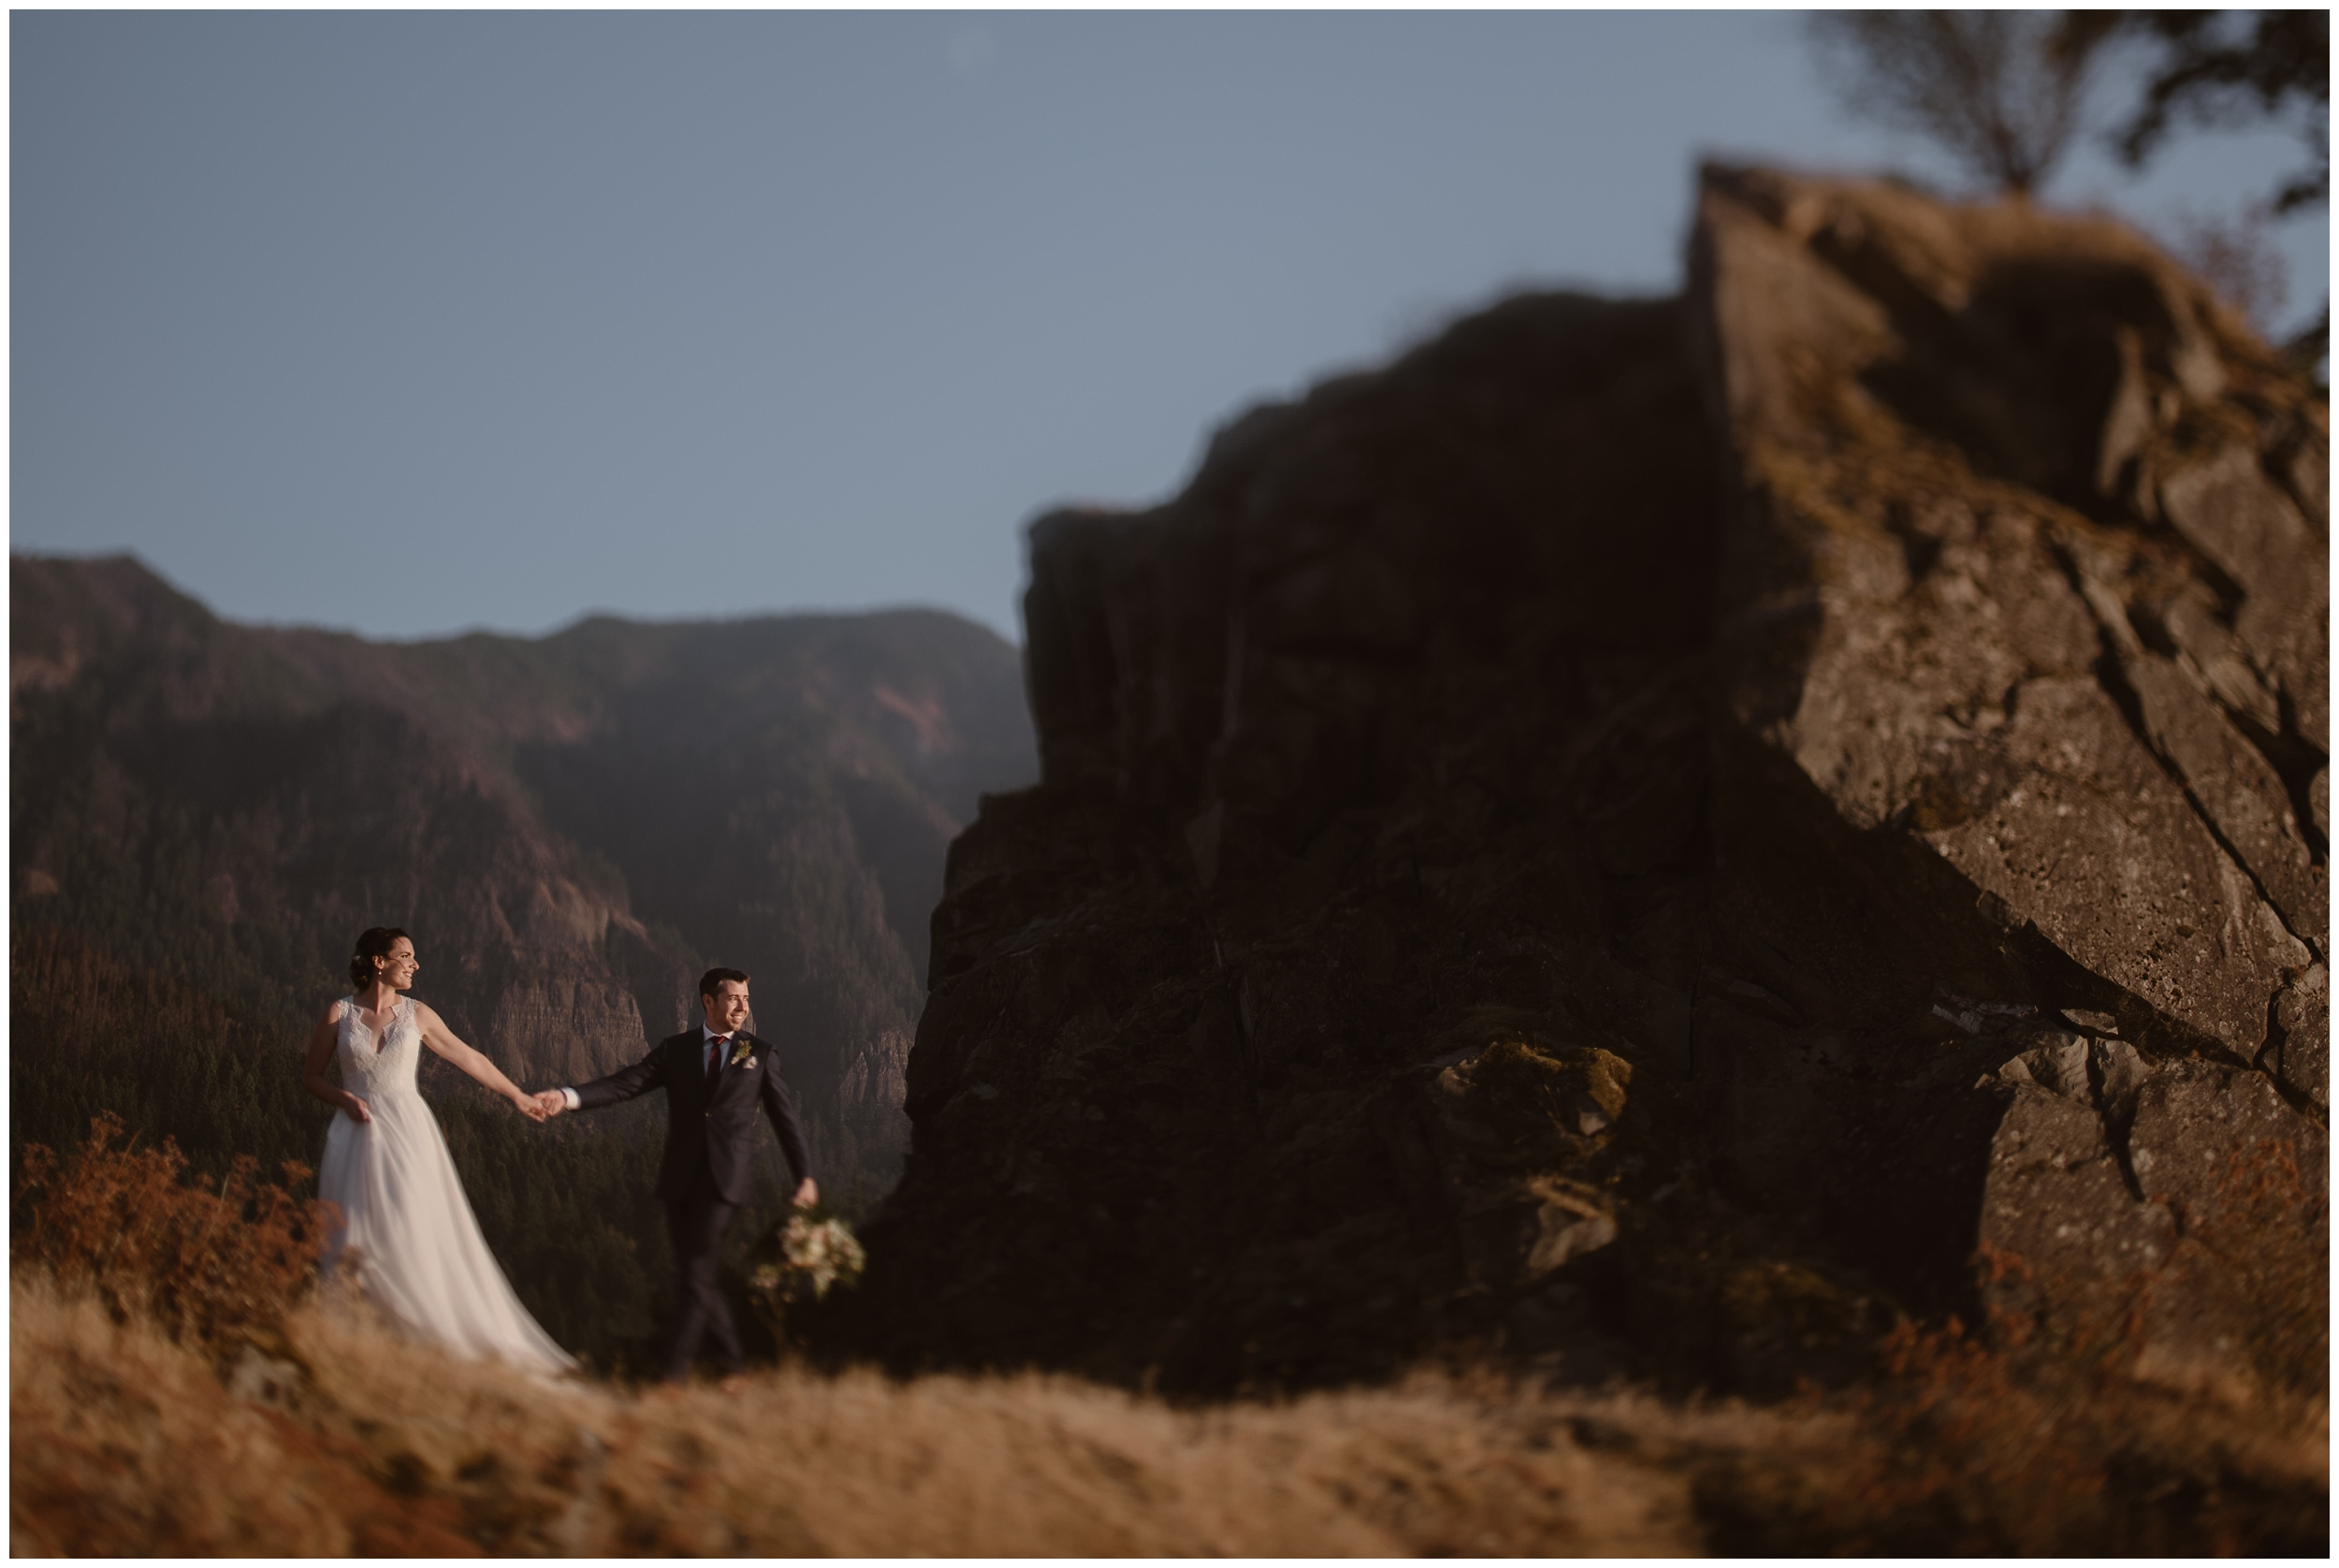 Lauryn, holding David's hand, leads him away from an enormous rock as they walk through a golden meadow. David, still holding Lauryn's bouquet, follows behind as he looks off into the distance at the Columbia River and the PNW islands dotting the river.